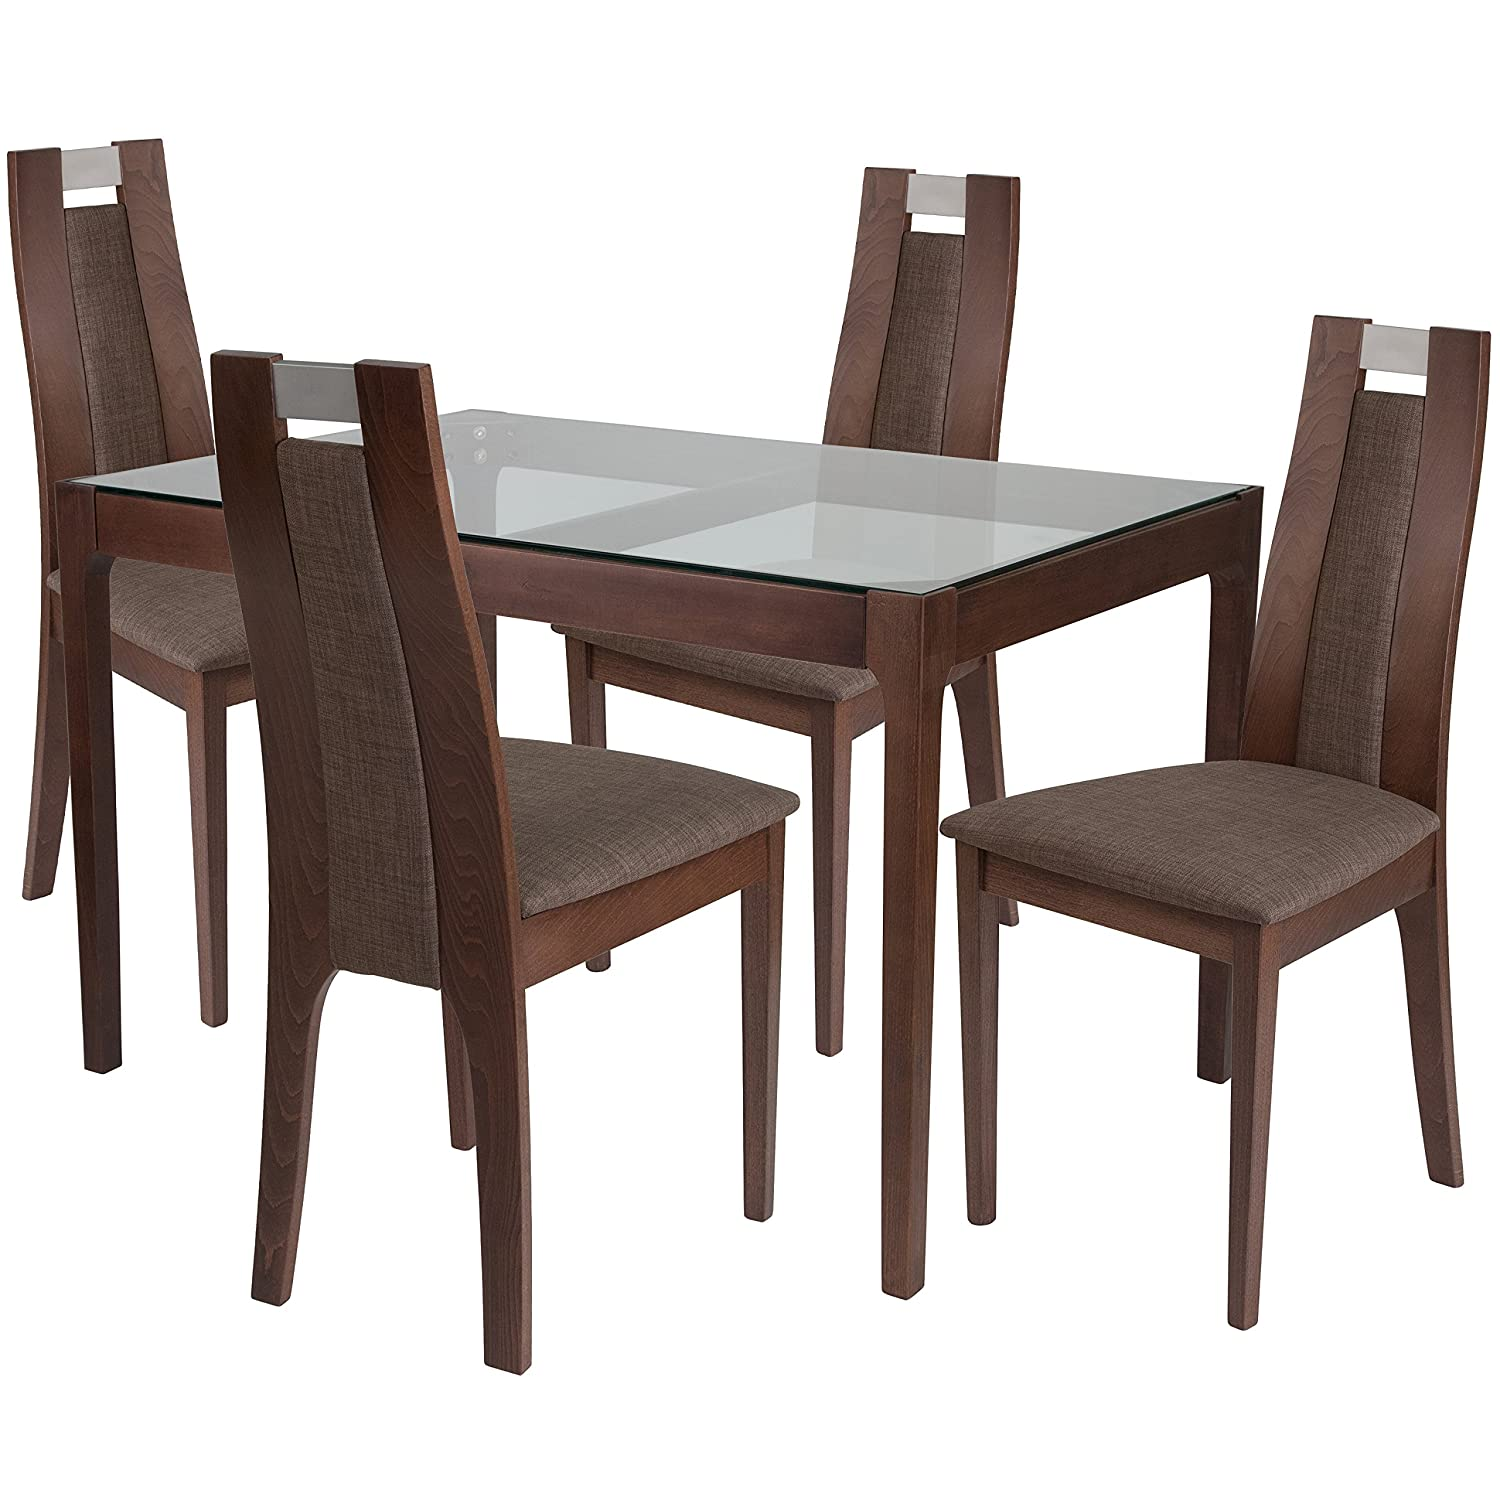 Amazon com flash furniture saratoga 5 piece walnut wood dining table set with glass top and curved slat wood dining chairs padded seats